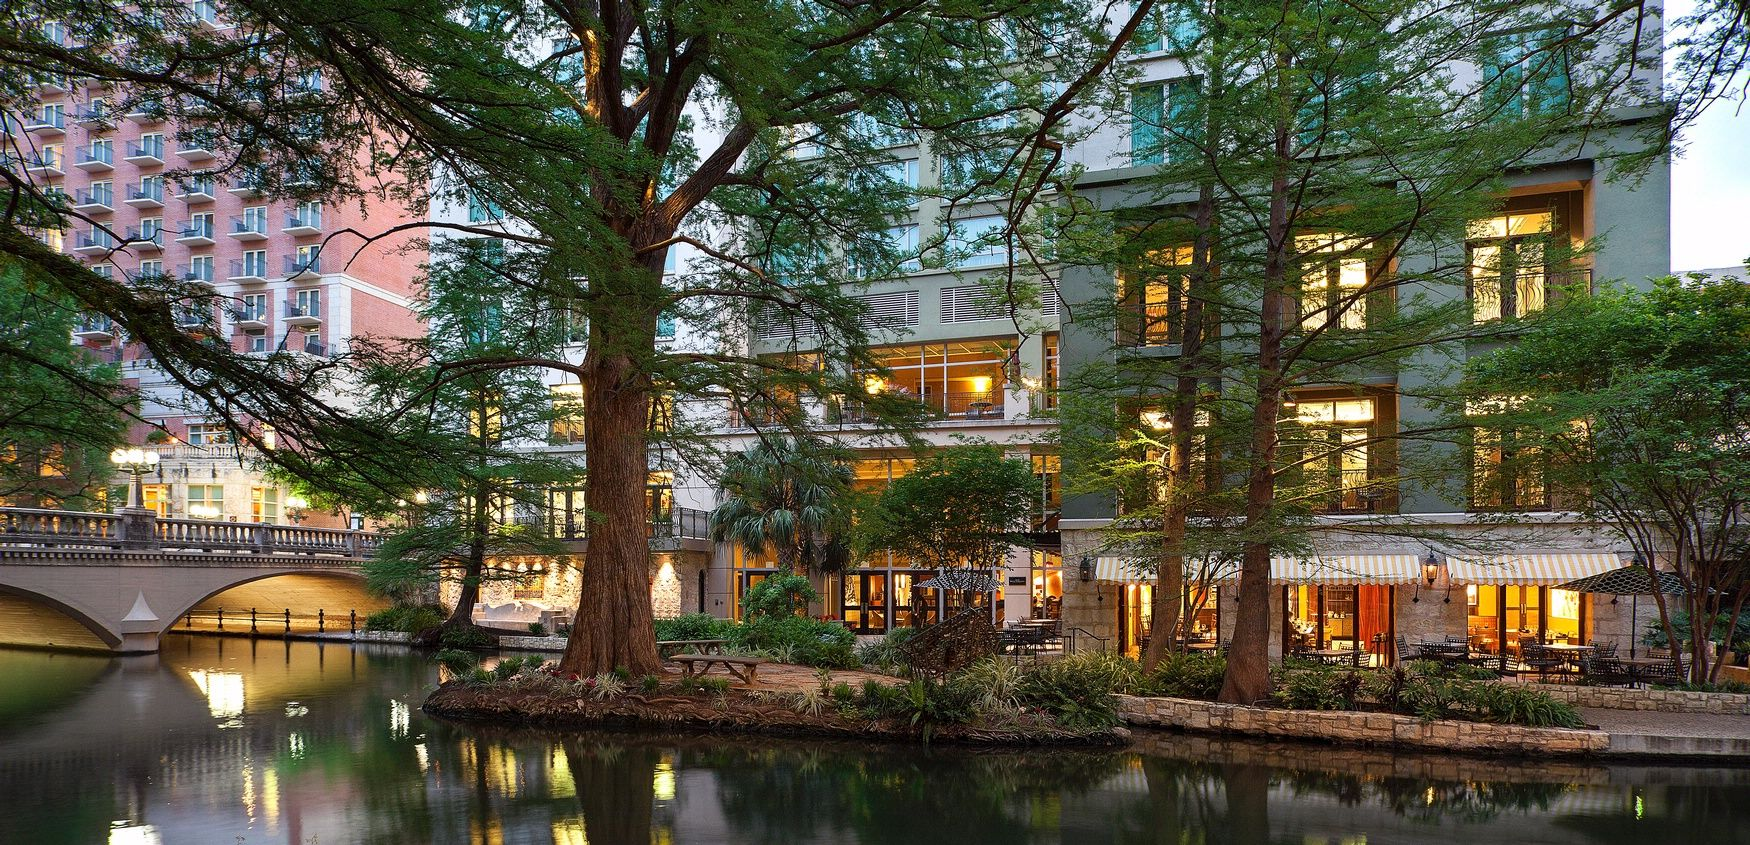 Hotel Contessa Is A Aaa Four Diamond Downtown San Antonio Nestled On The Banks Of Riverwalk Offering Beautifully Luxury Suites Amenities